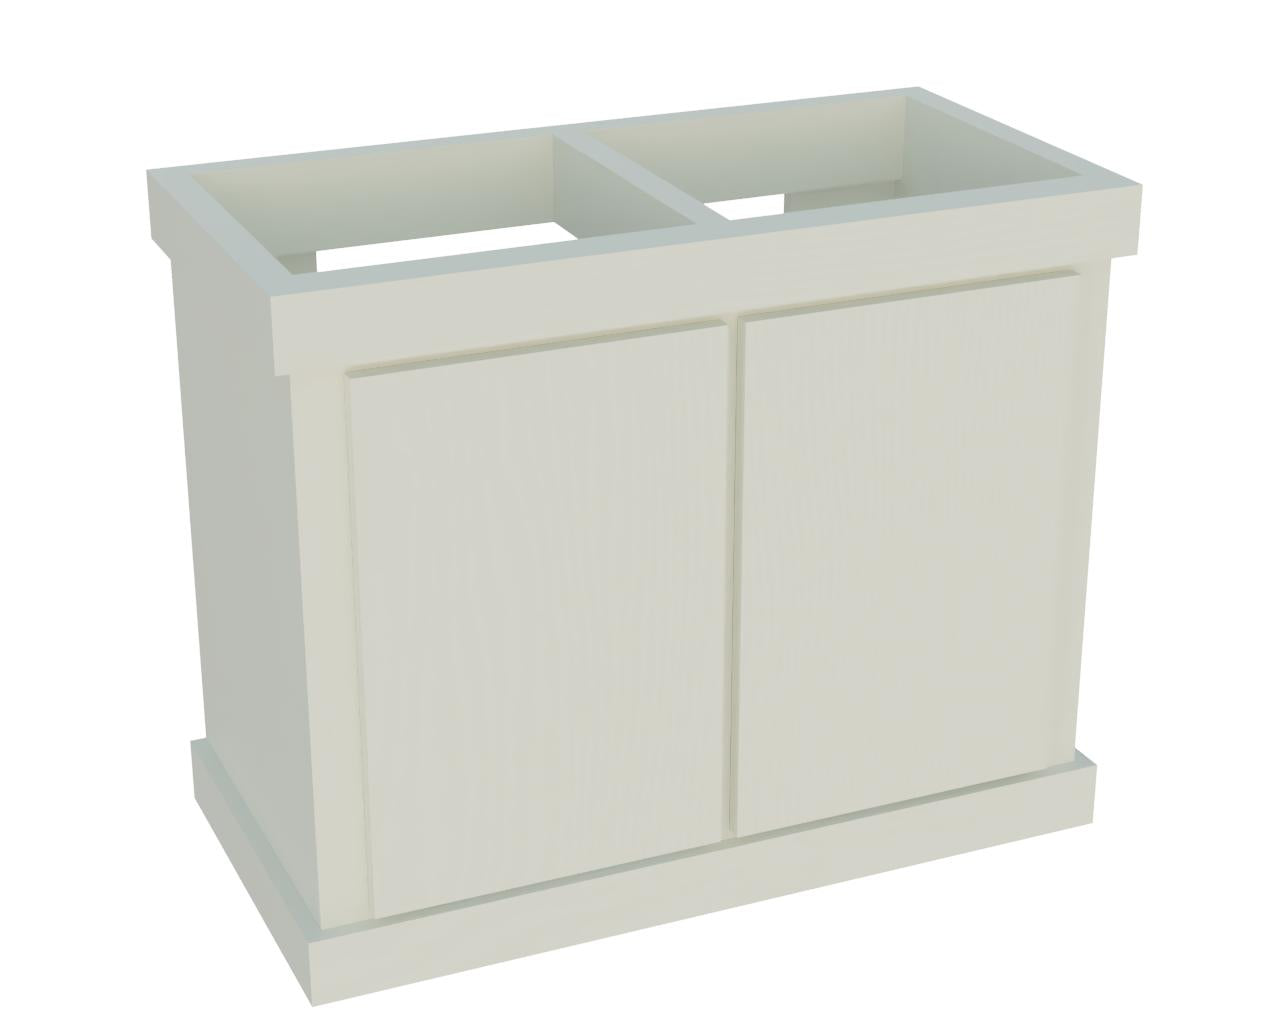 "OceanVue 50 36x18 Wood Stand 30"" Tall White"